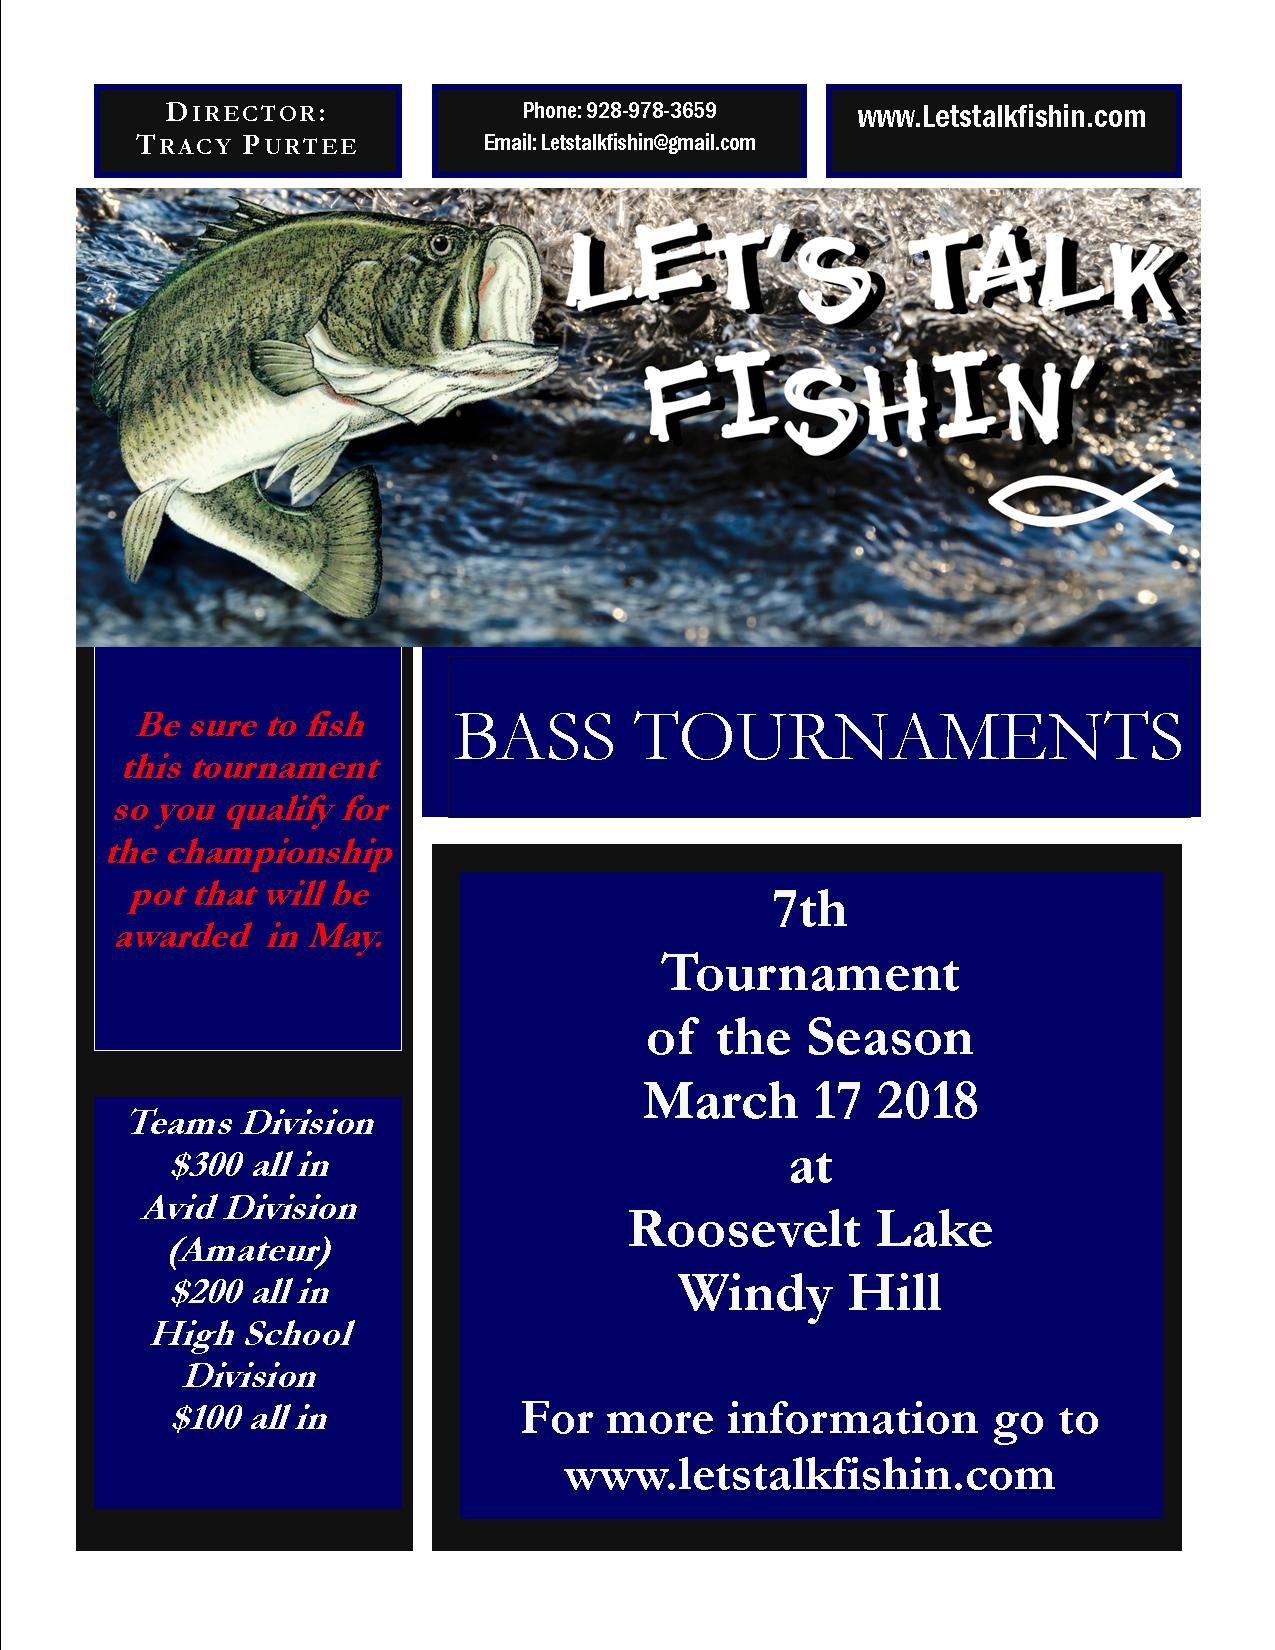 Click image for larger version  Name:7th Tournament.jpg Views:985 Size:283.6 KB ID:96826